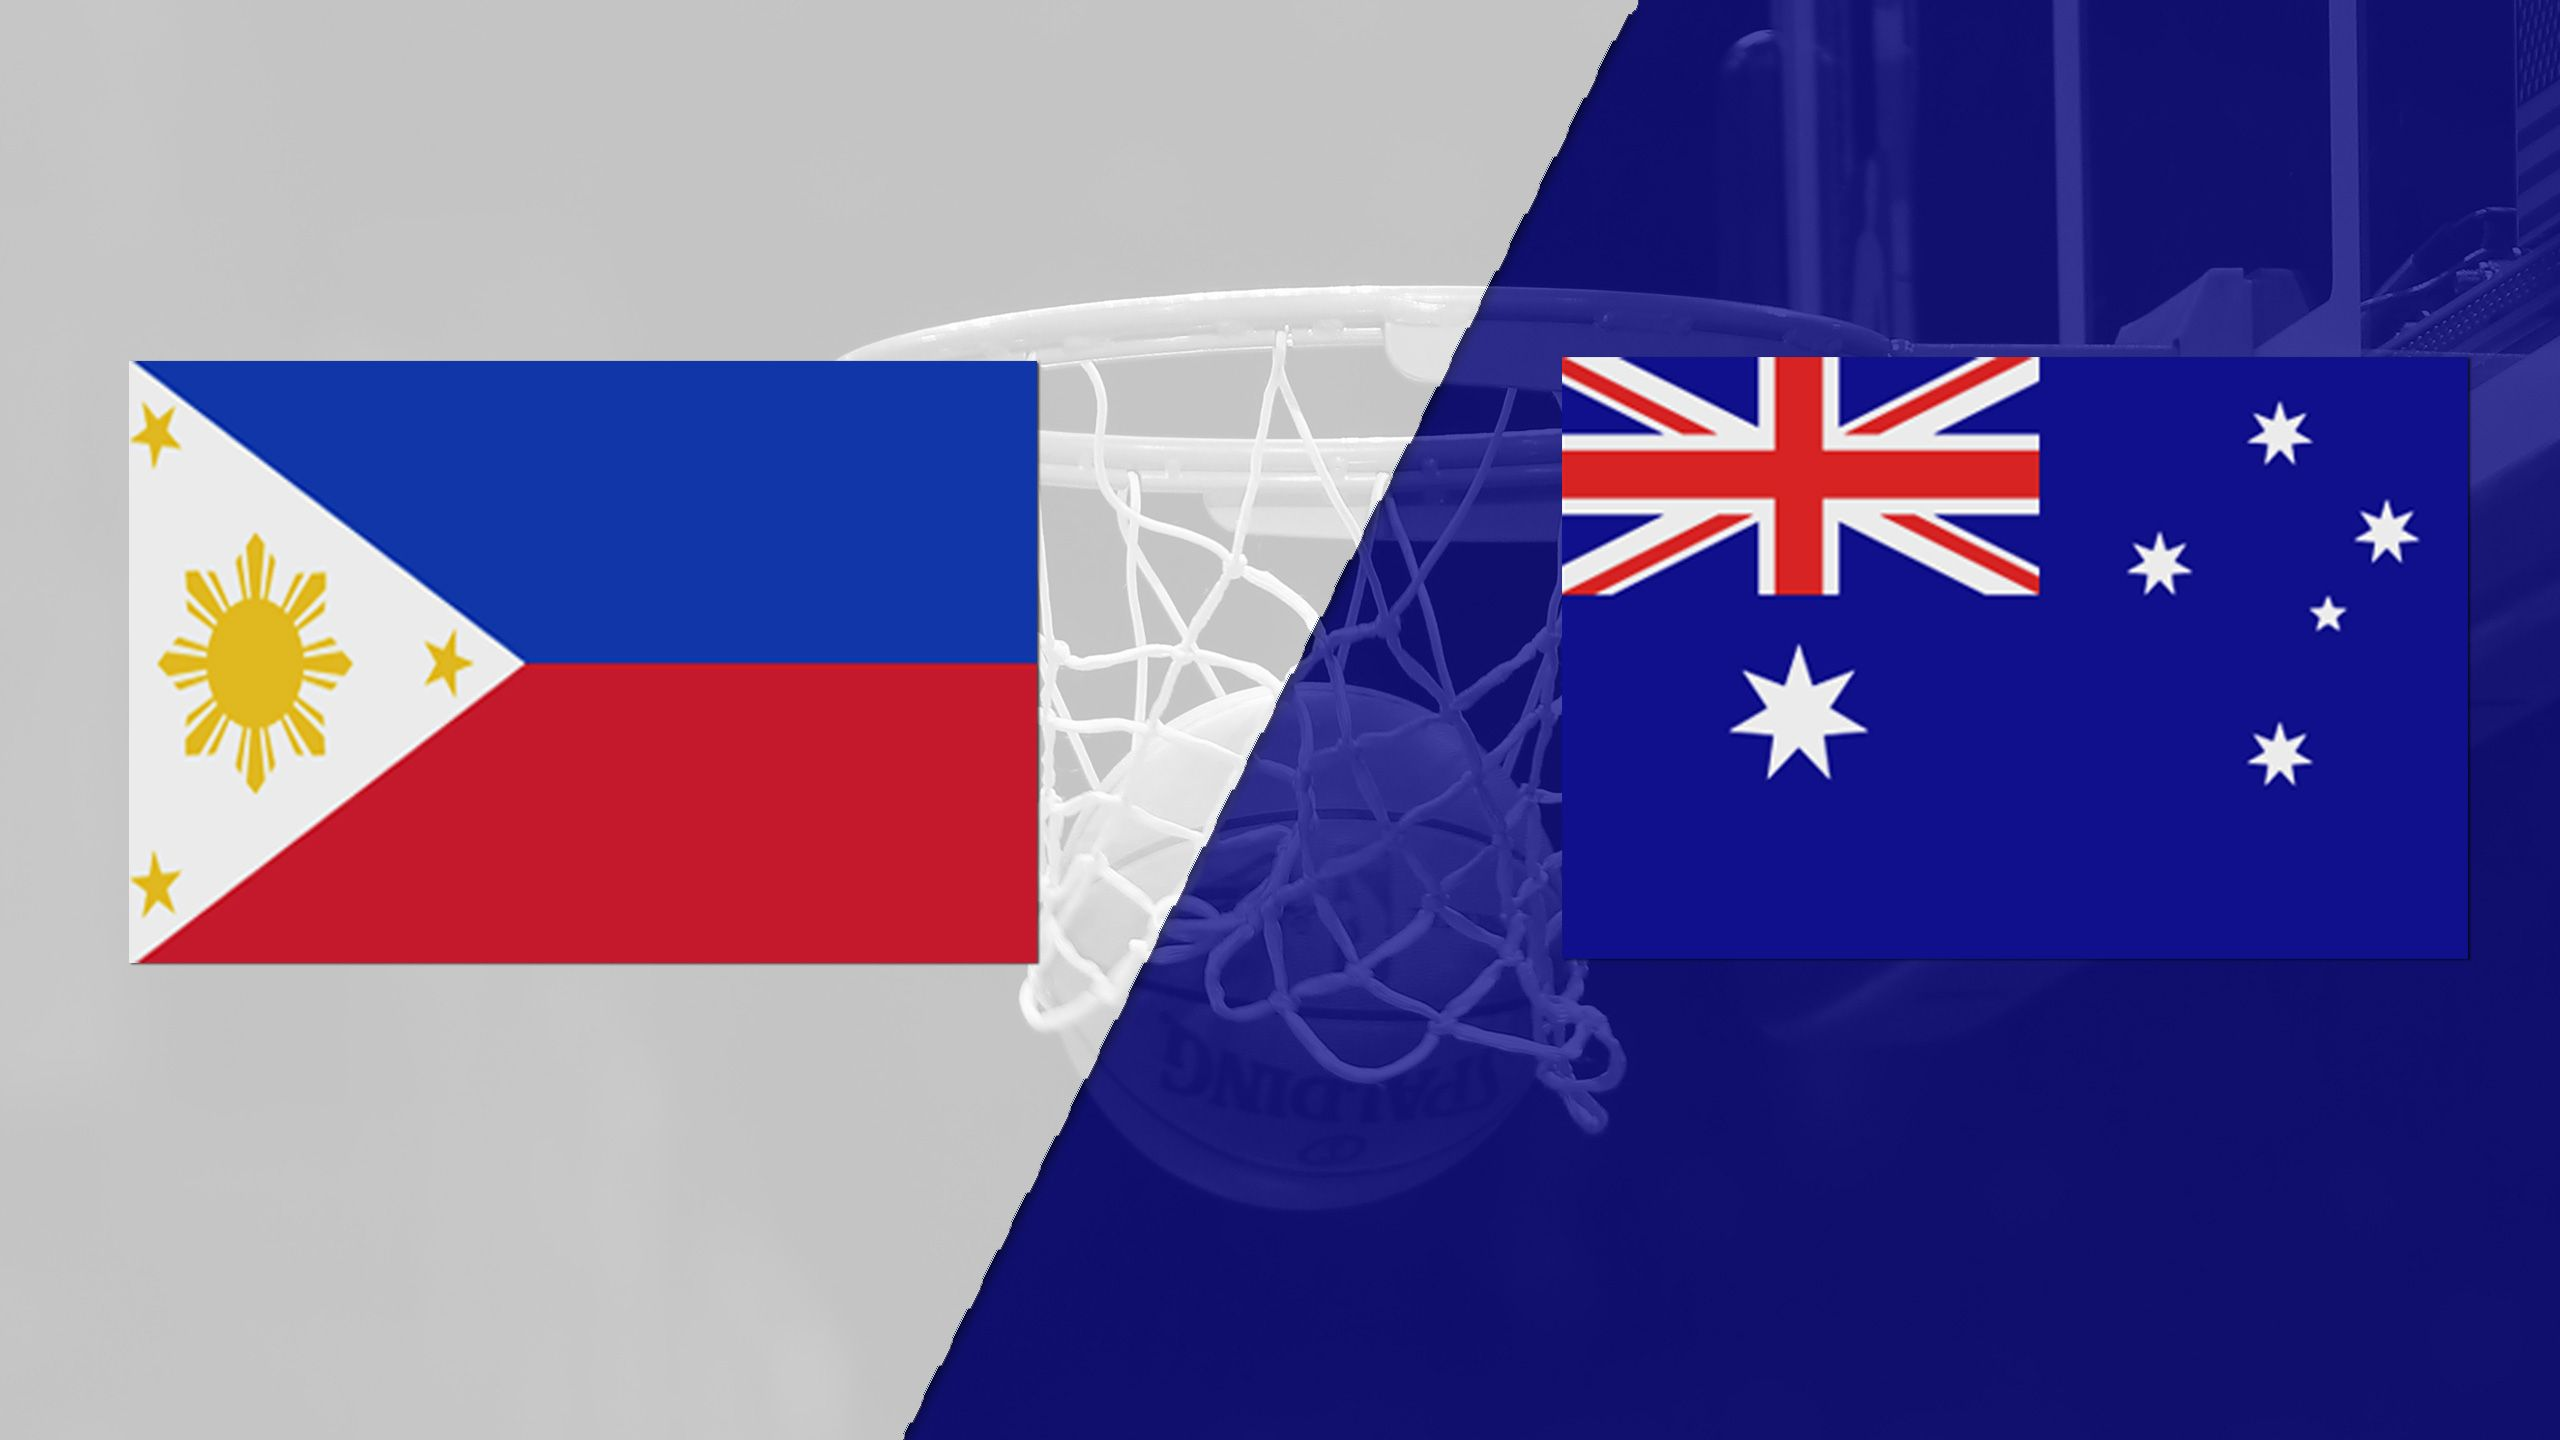 Philippines vs. Australia (FIBA World Cup 2019 Qualifier)